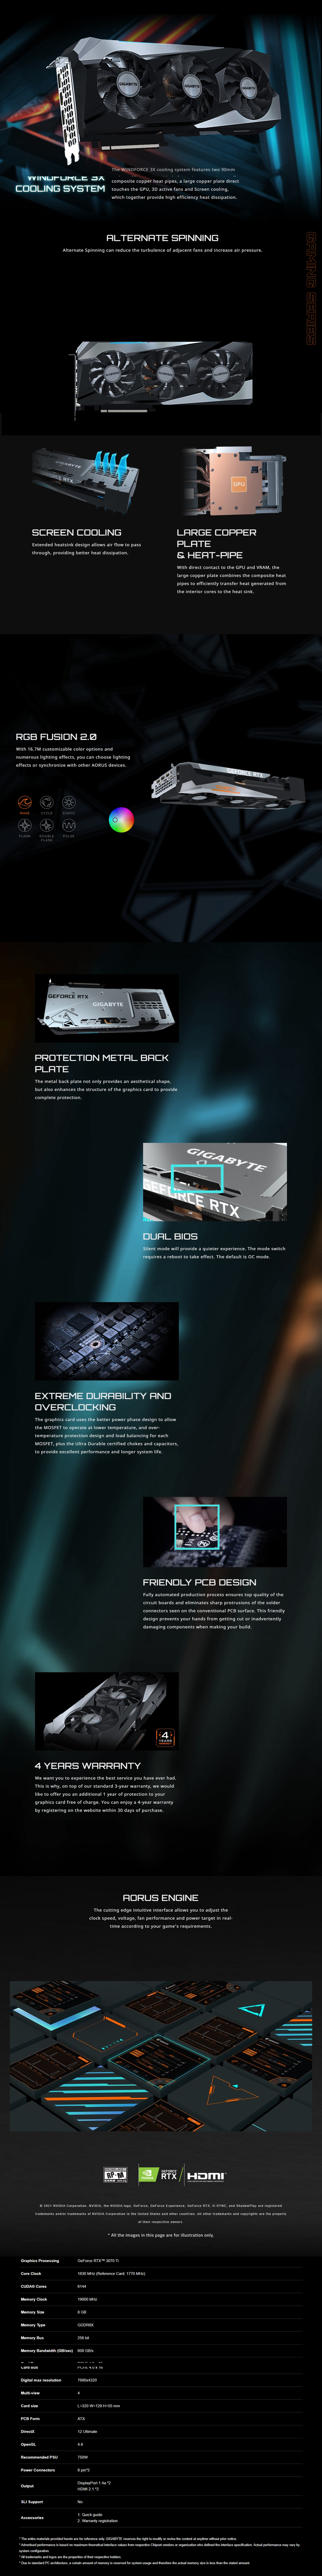 A large marketing image providing additional information about the product Gigabyte GeForce RTX 3070 Ti Gaming OC 8GB GDDR6X - Additional alt info not provided